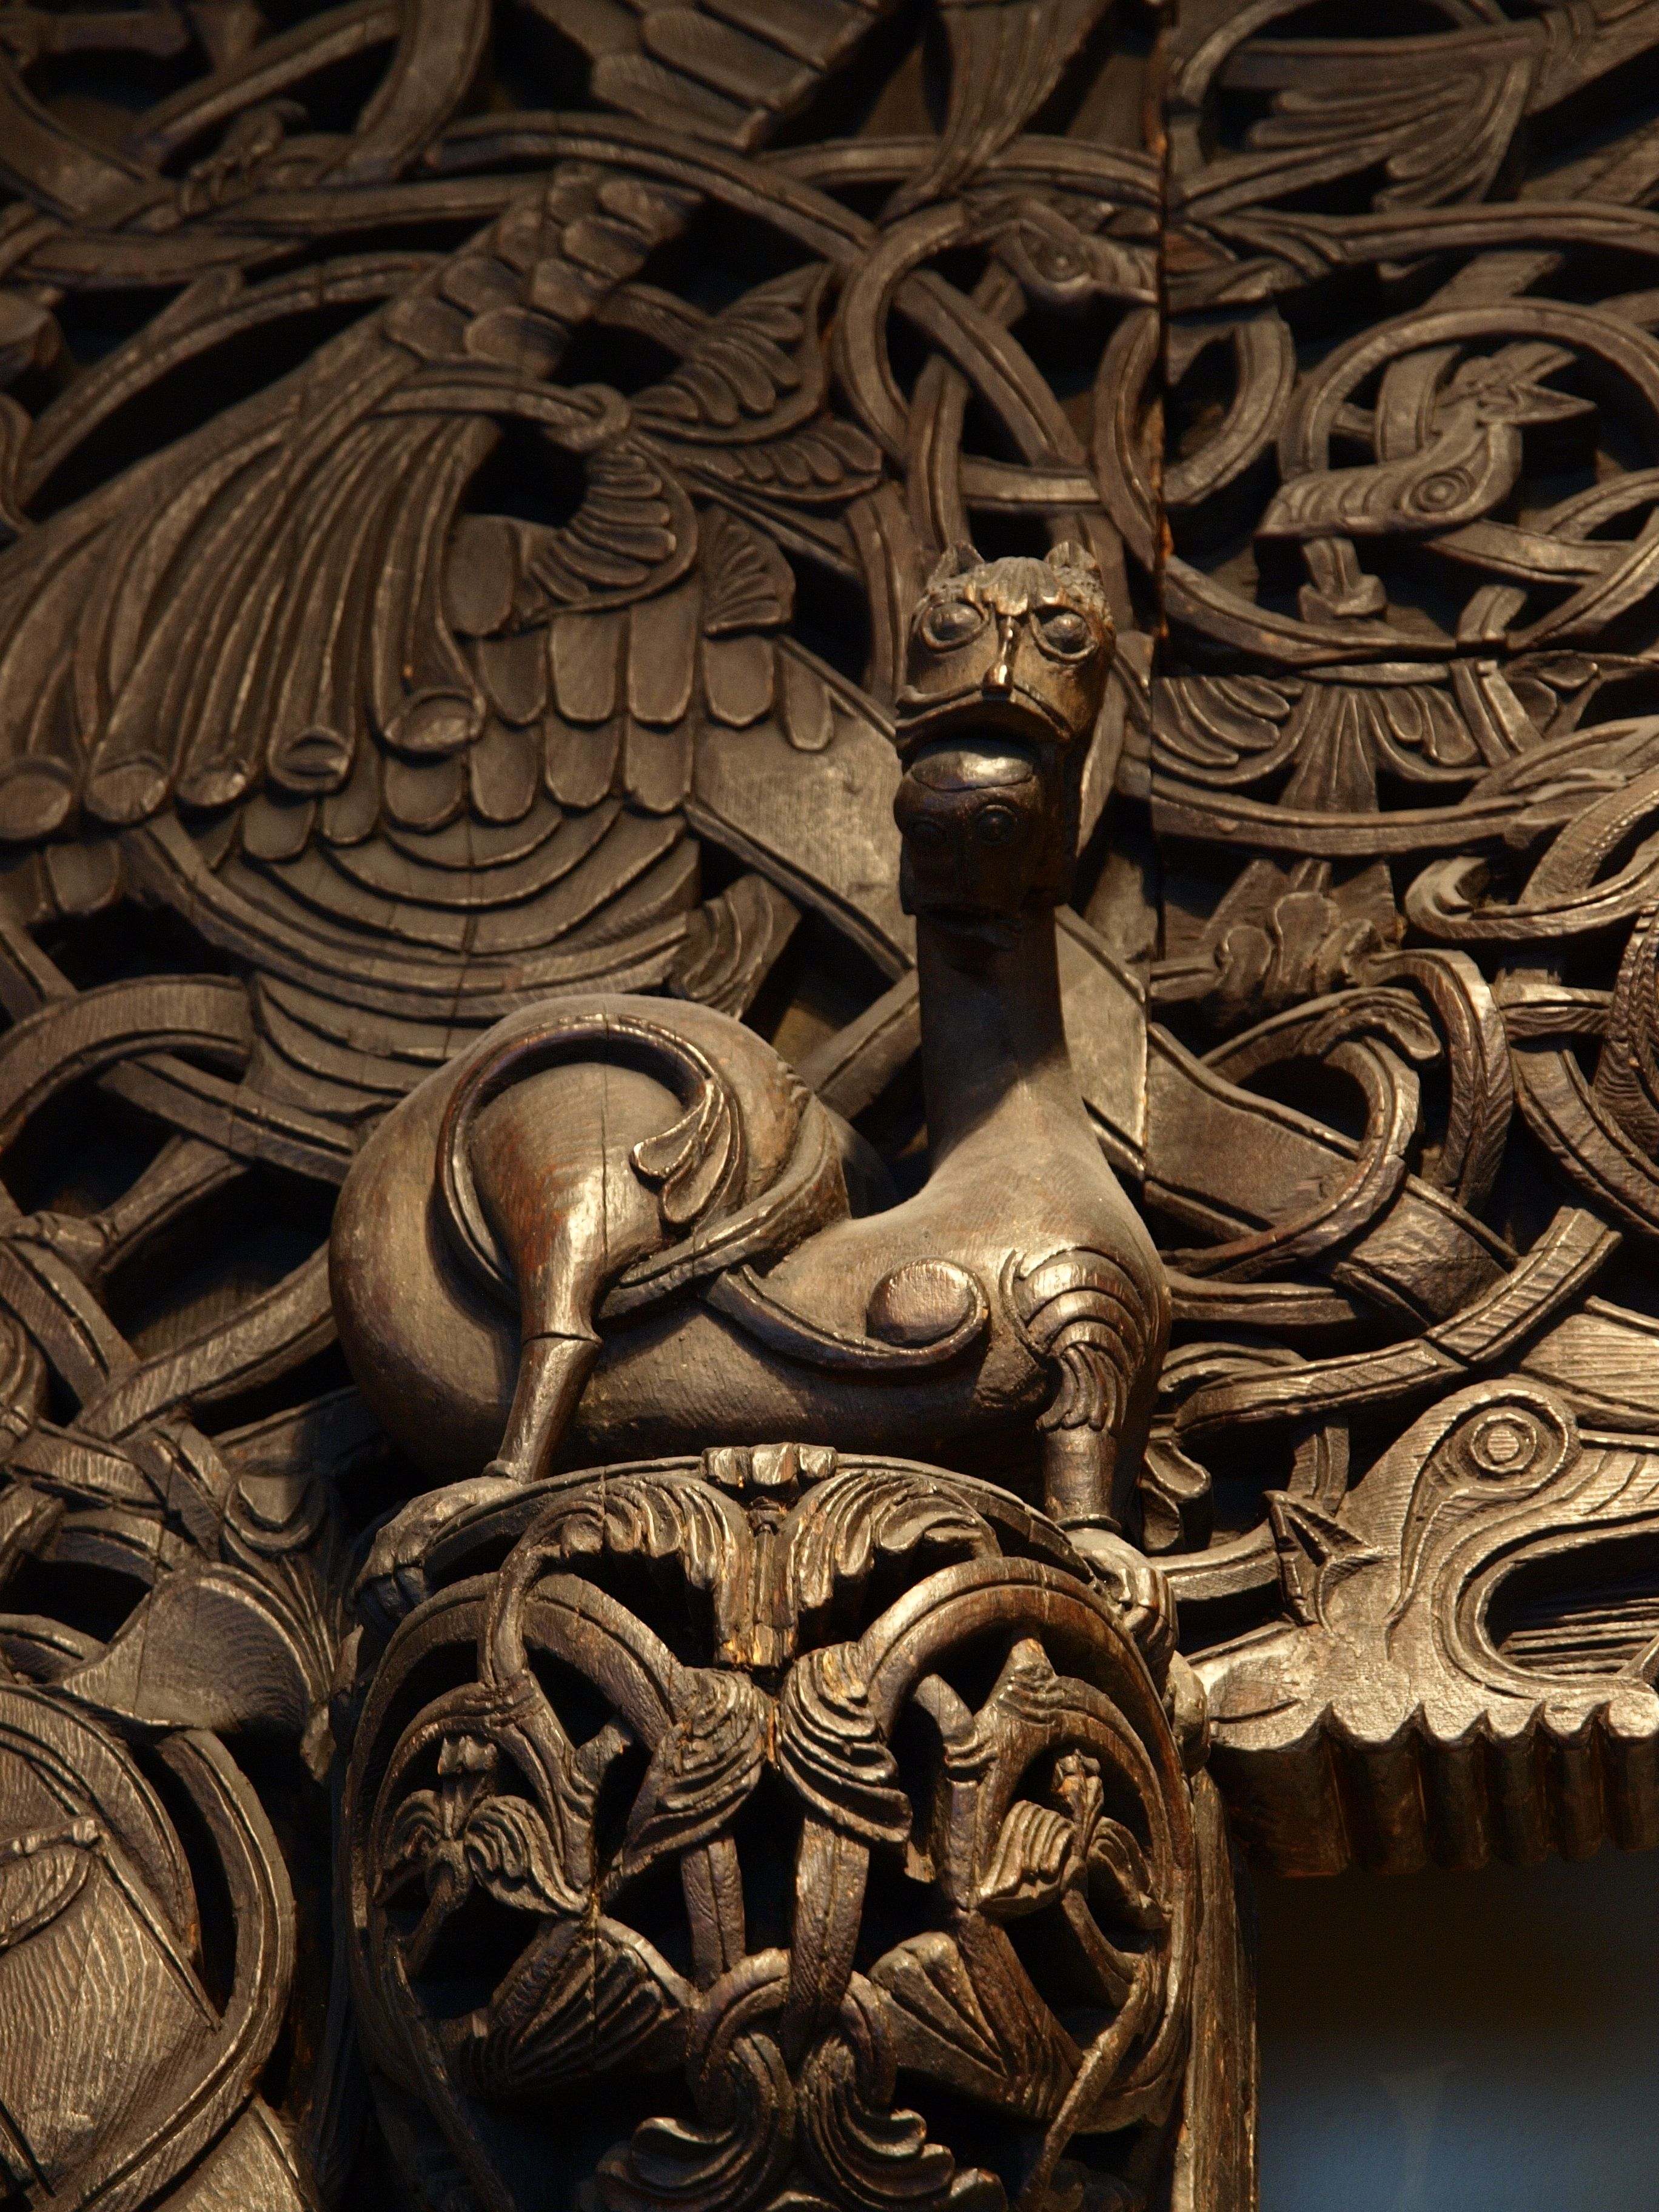 door of a stave church historisk museum, oslo, norway Celtic imagination and beauty...